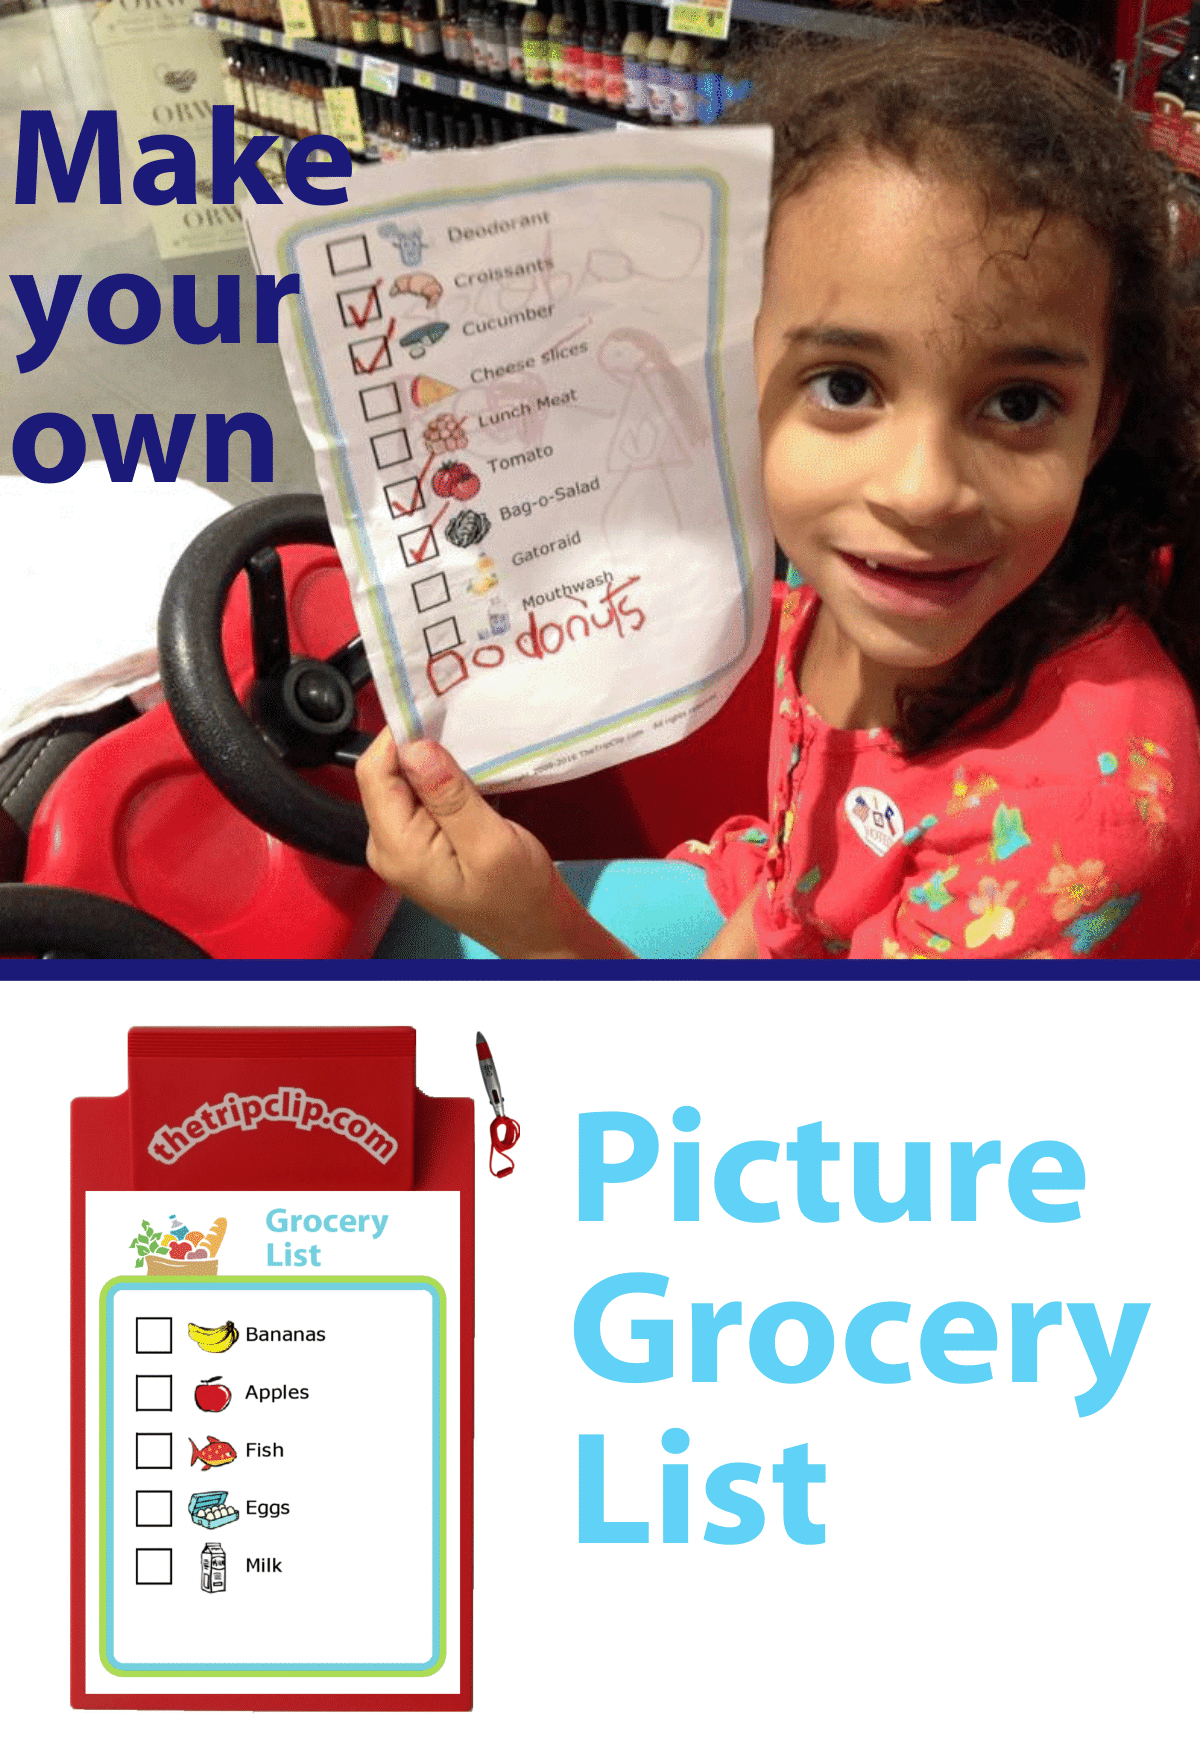 Girl in red grocery cart holding printed picture grocery list